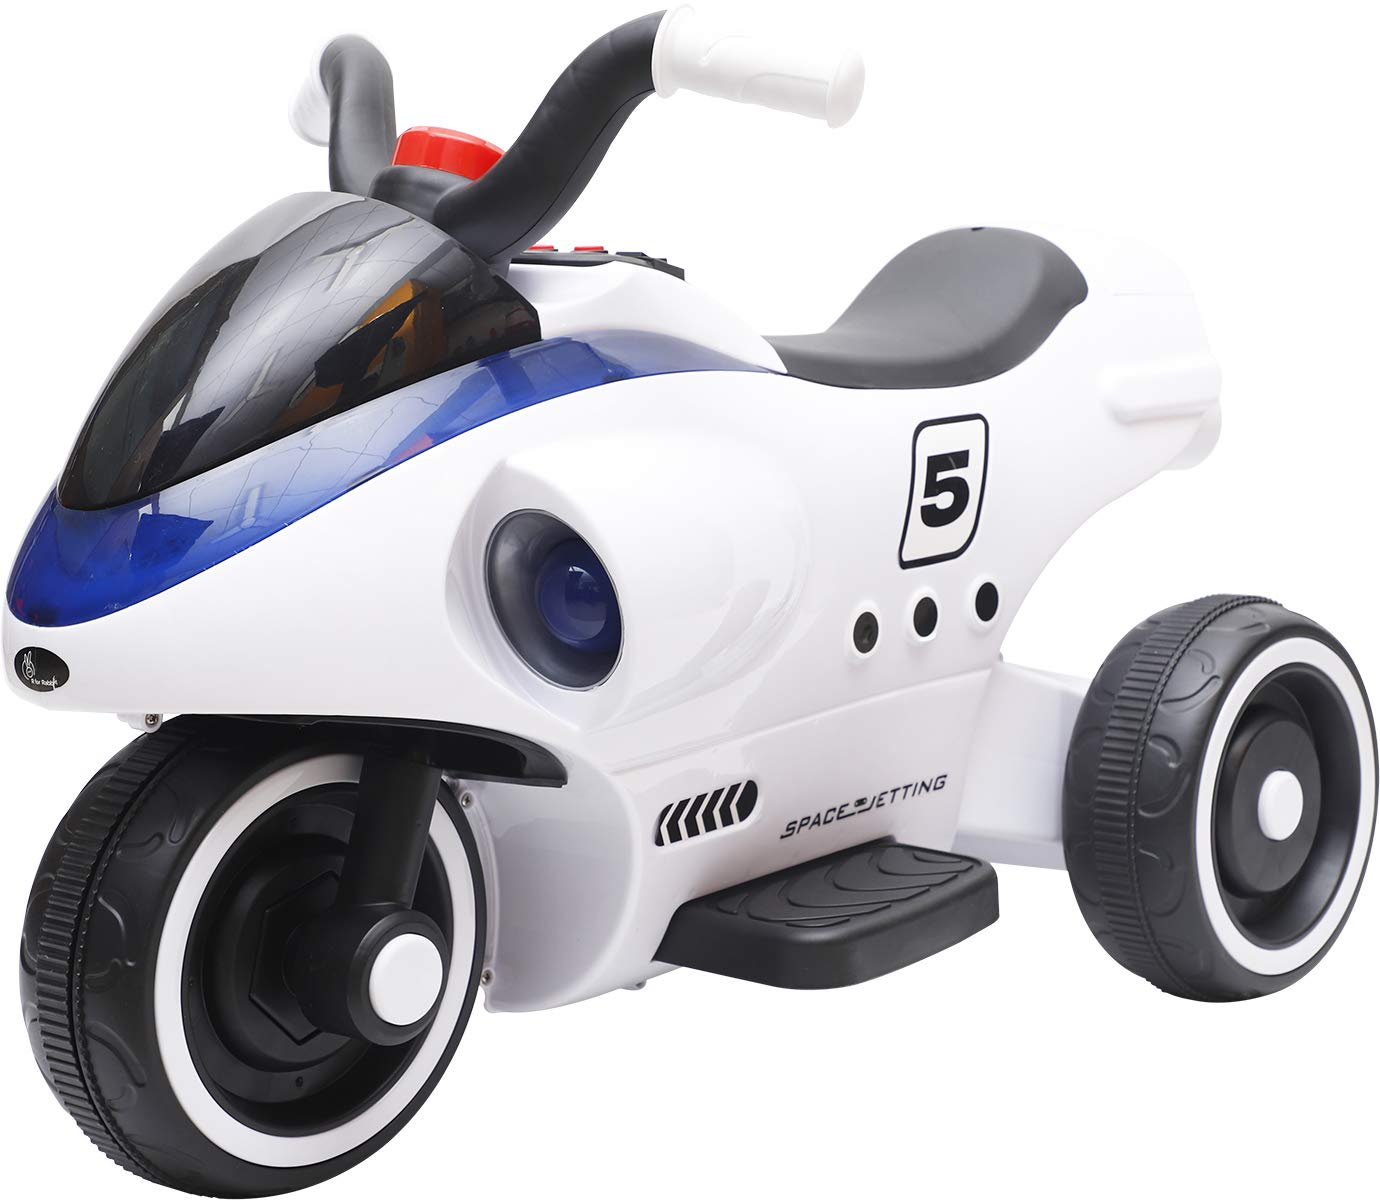 R For Rabbit Apollo Electric Bike for Kids review